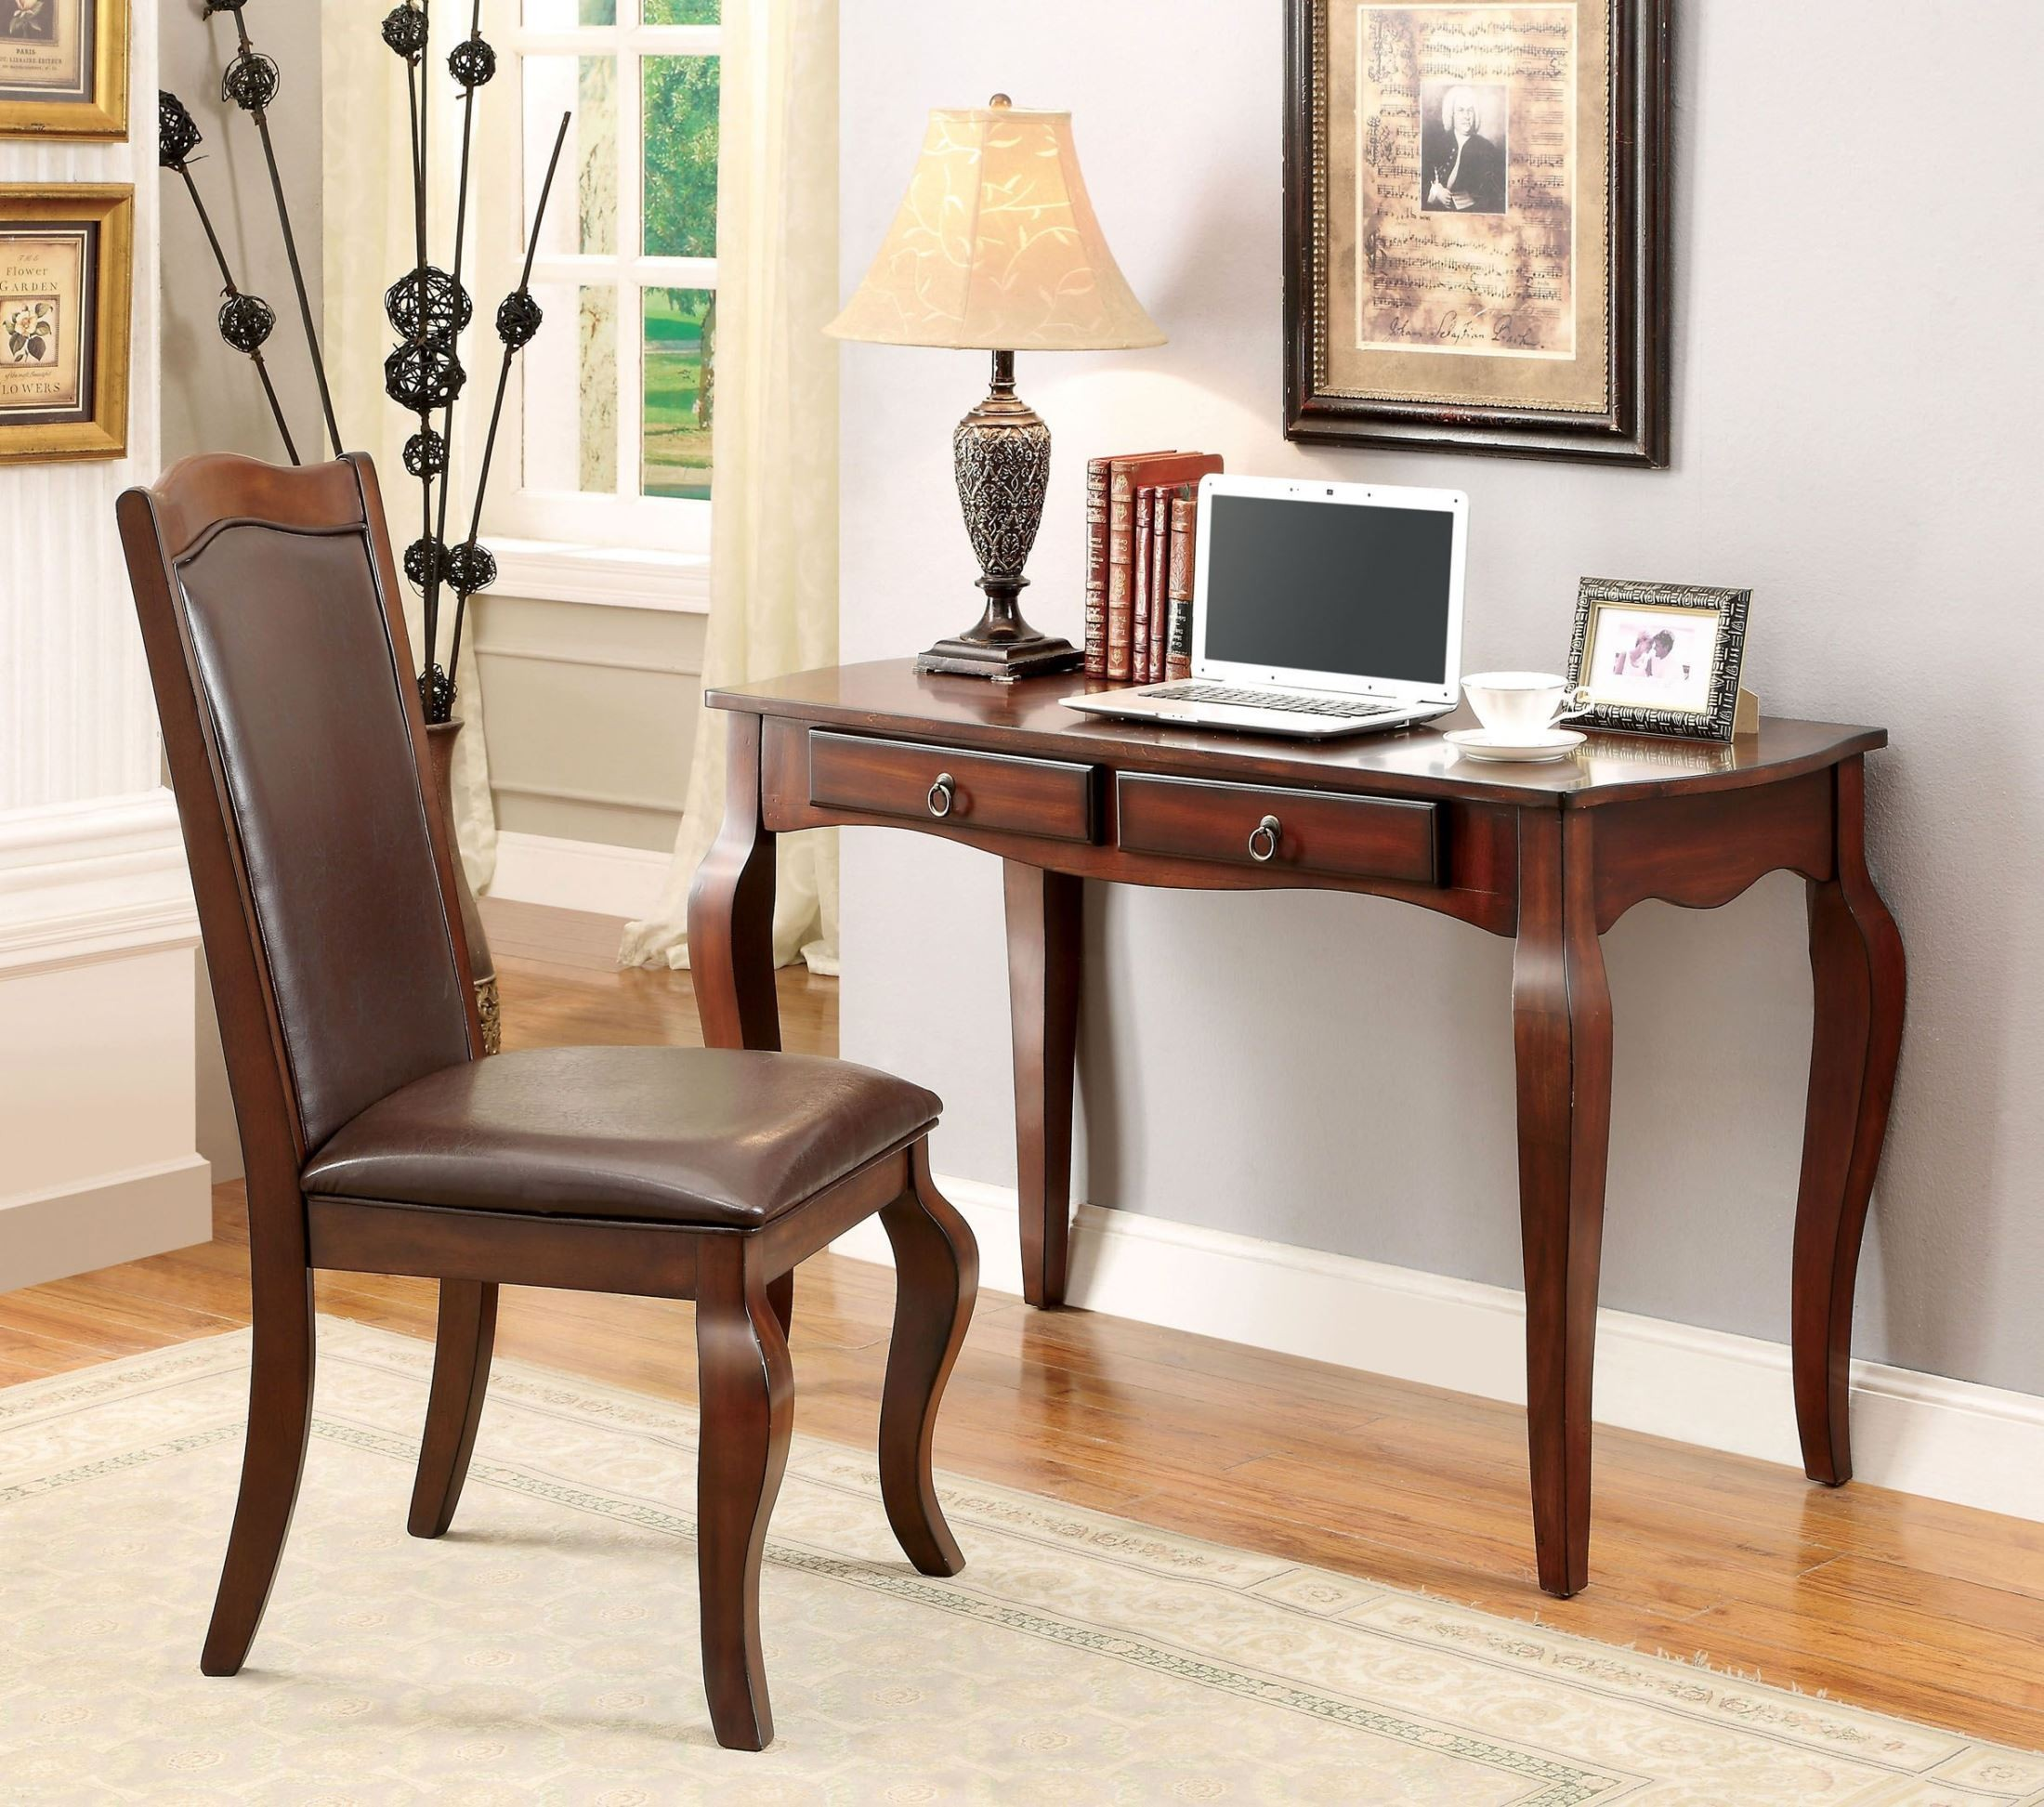 Almont cherry accent desk with chair from furniture of